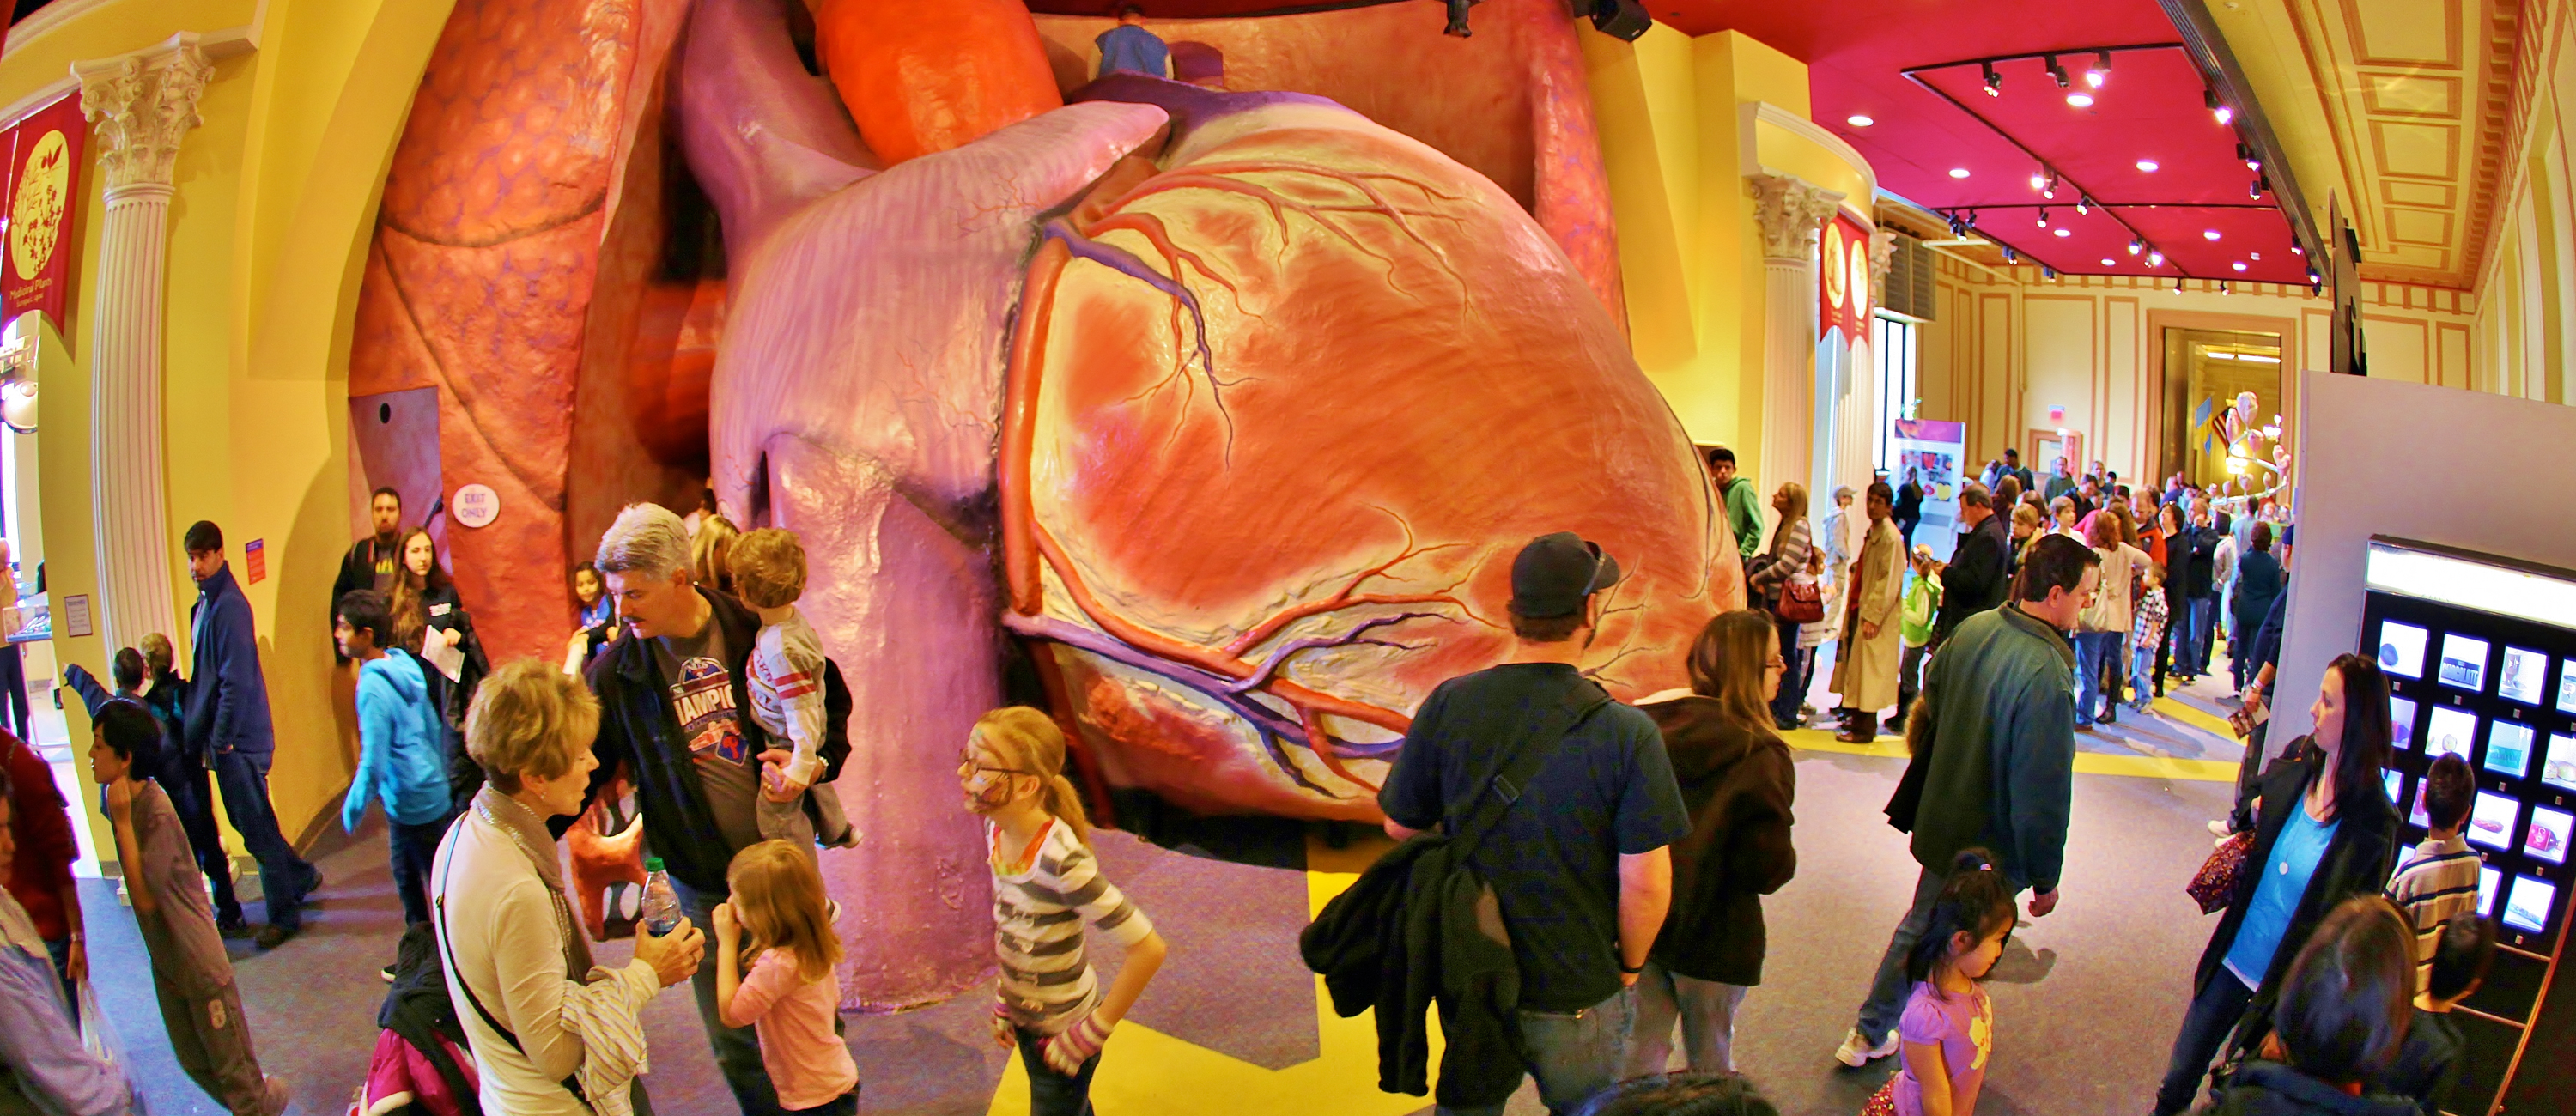 The Giant Heart The Franklin Institute Science Museum